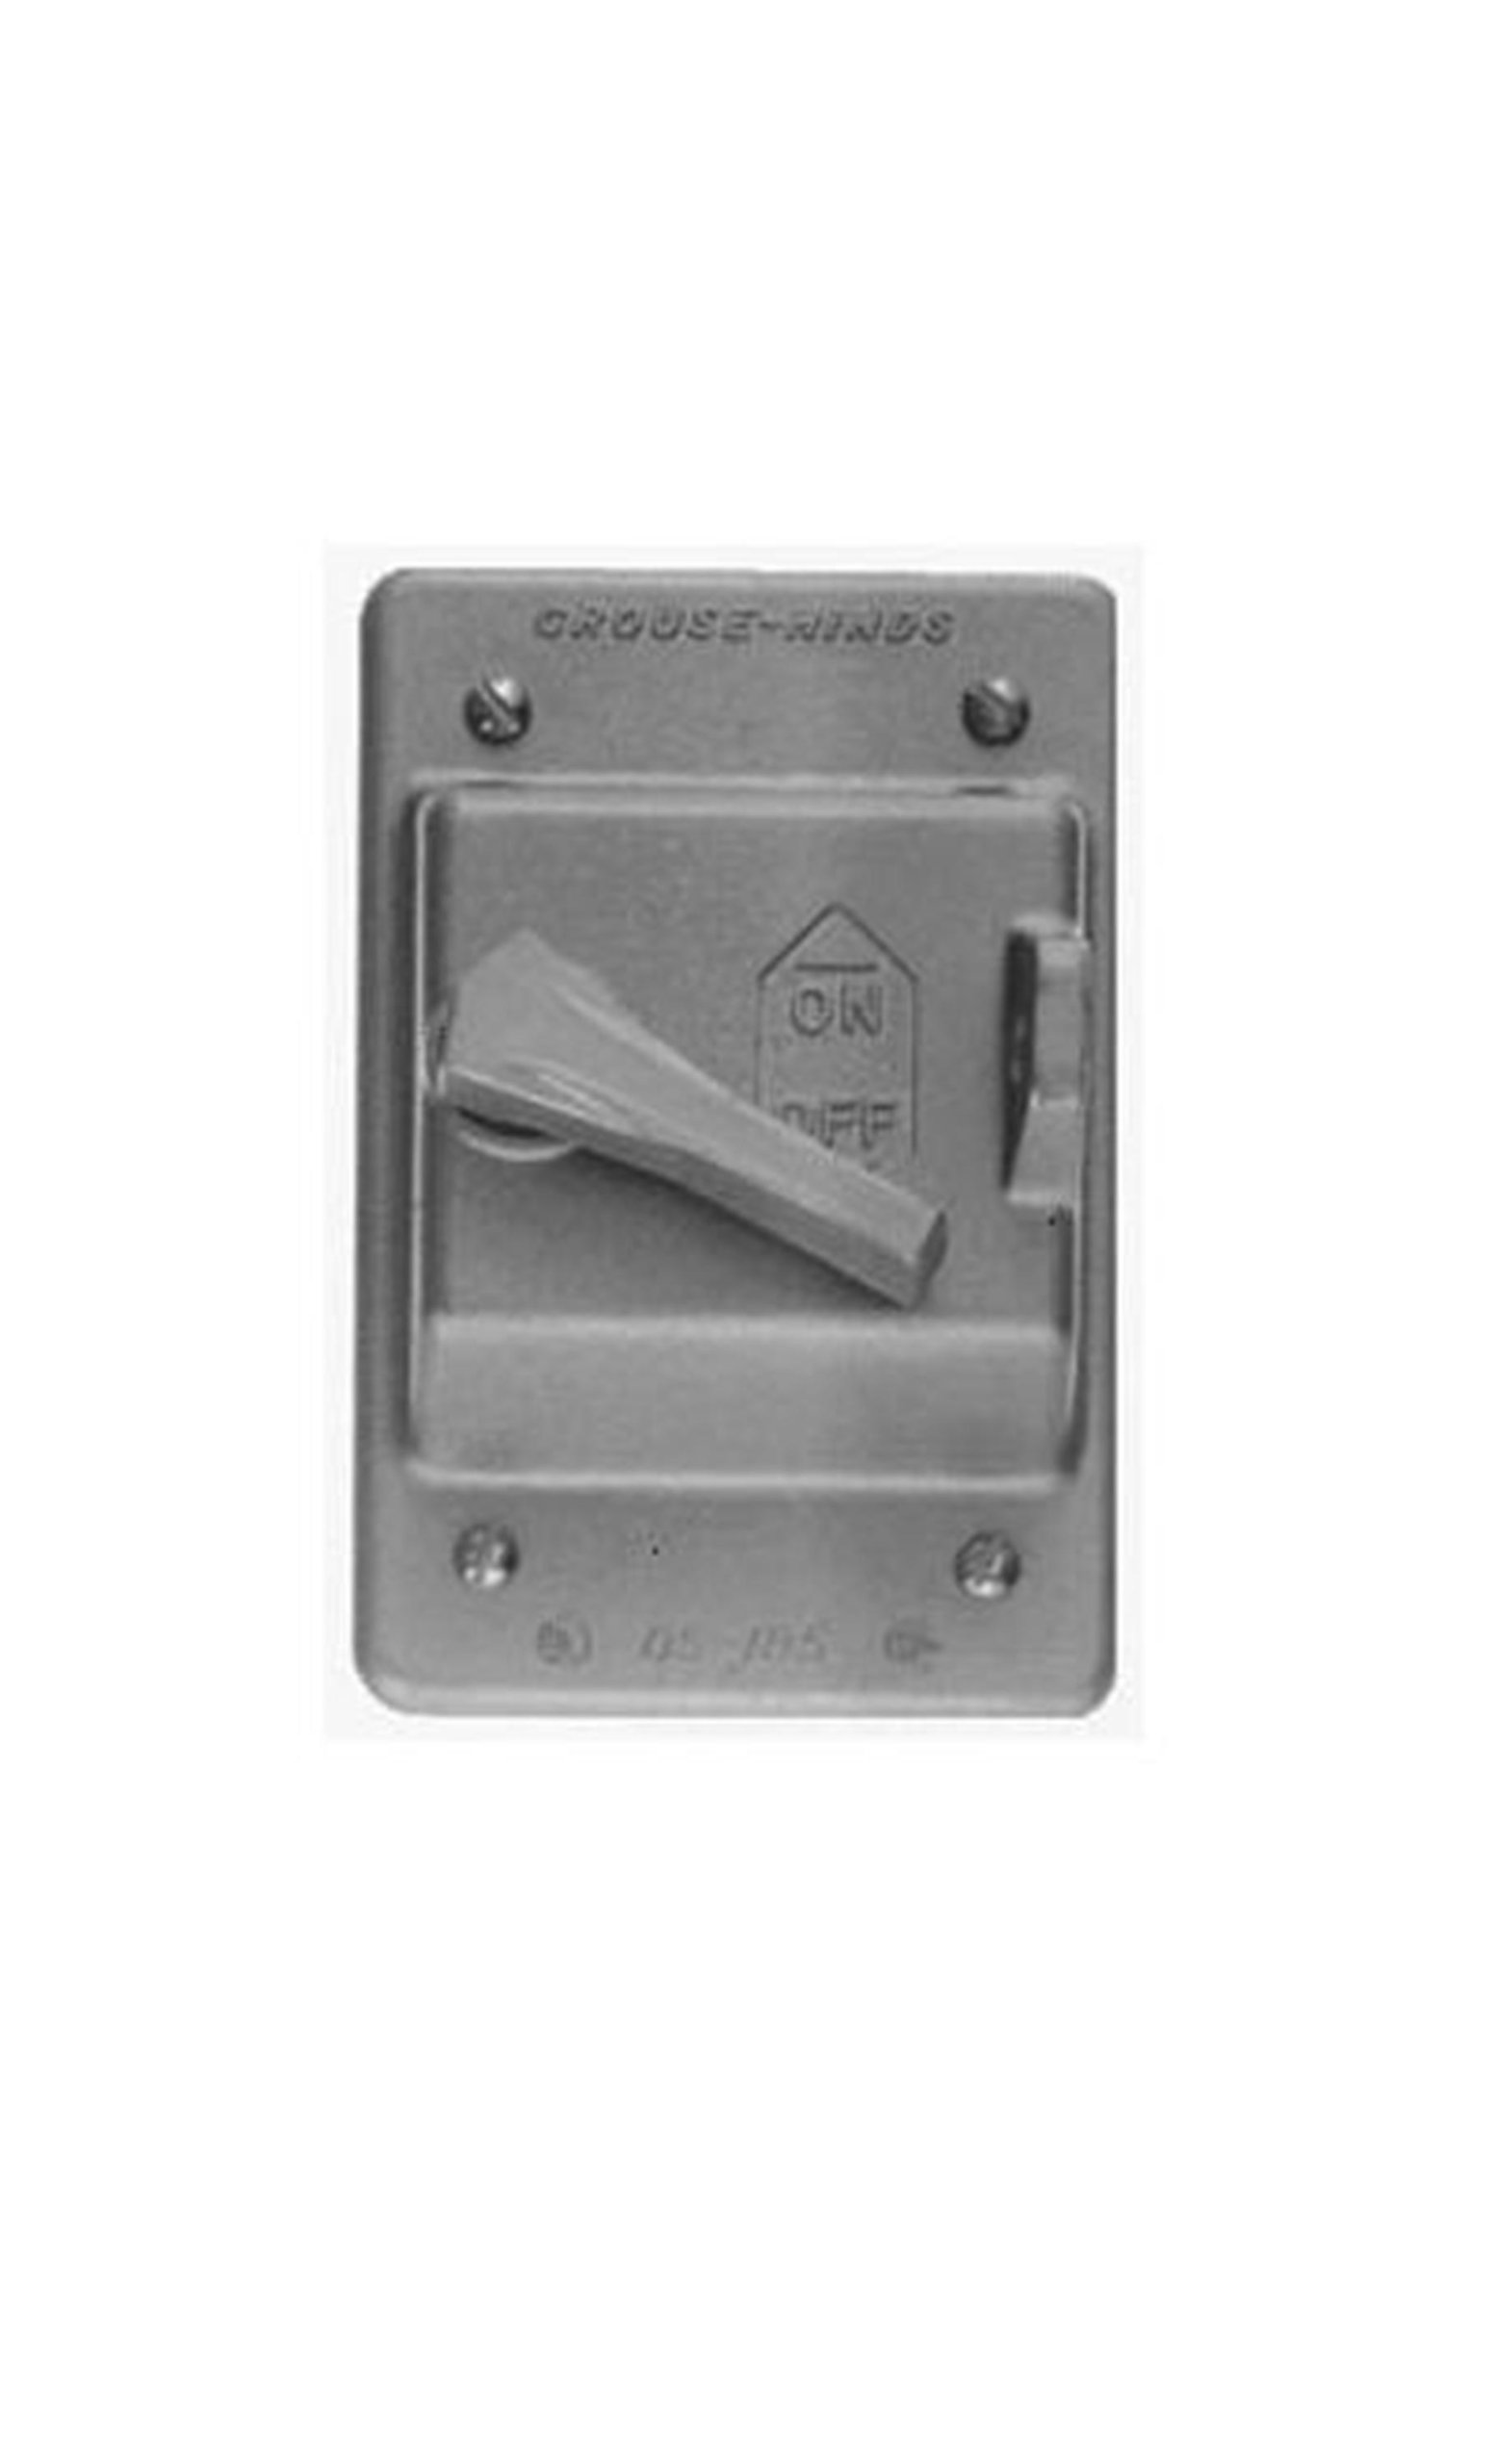 Crouse-Hinds DS185 Die Cast Aluminum Raintight Cover with Locking Arrangement by Crouse-Hinds